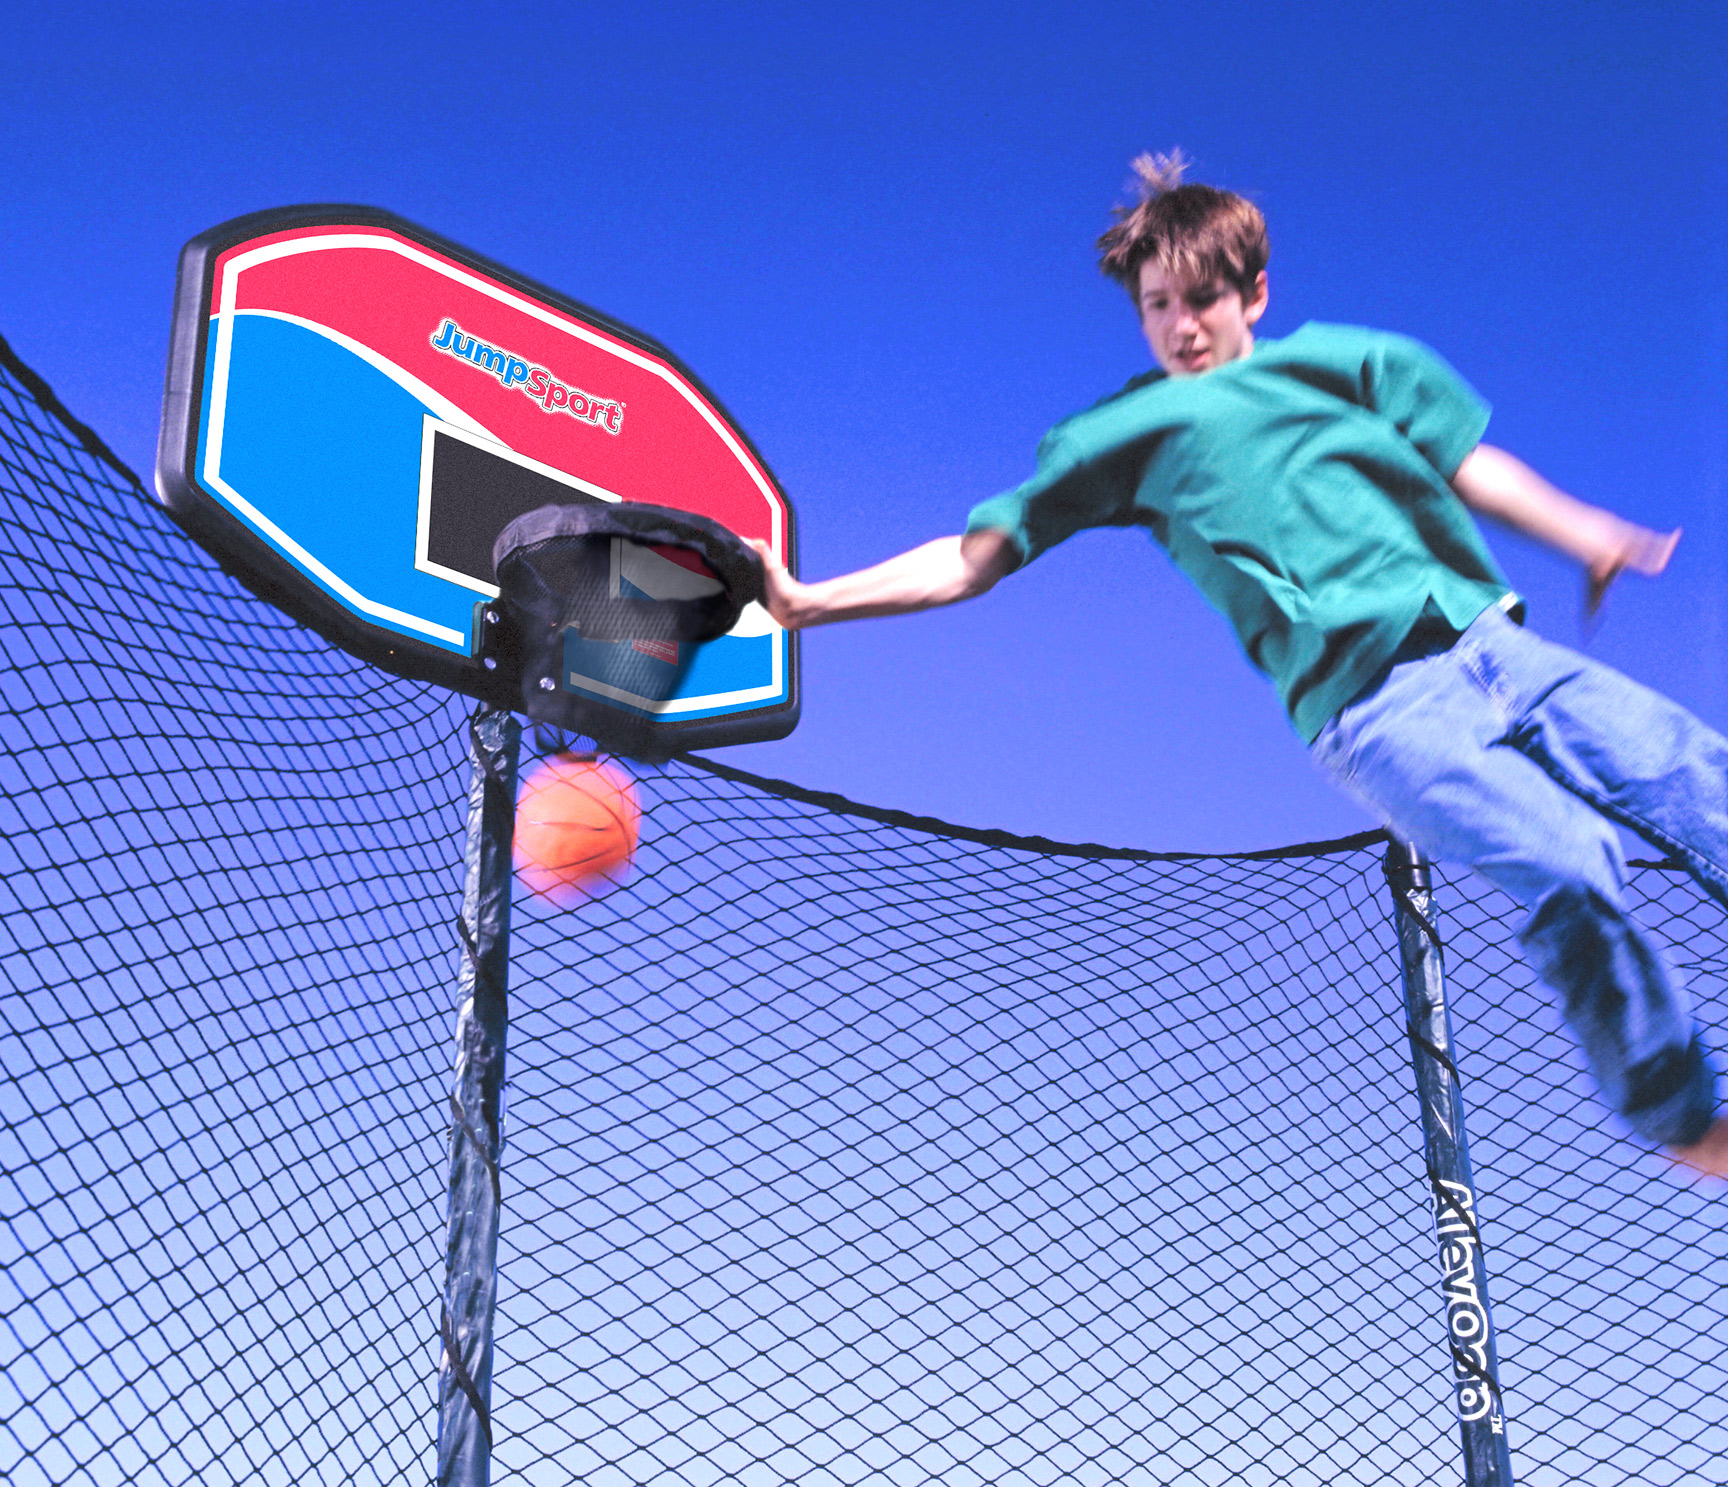 JumpSport ProFlex Basketball Set Trampoline Accessory 0 0 JumpSport ProFlex Basketball Set